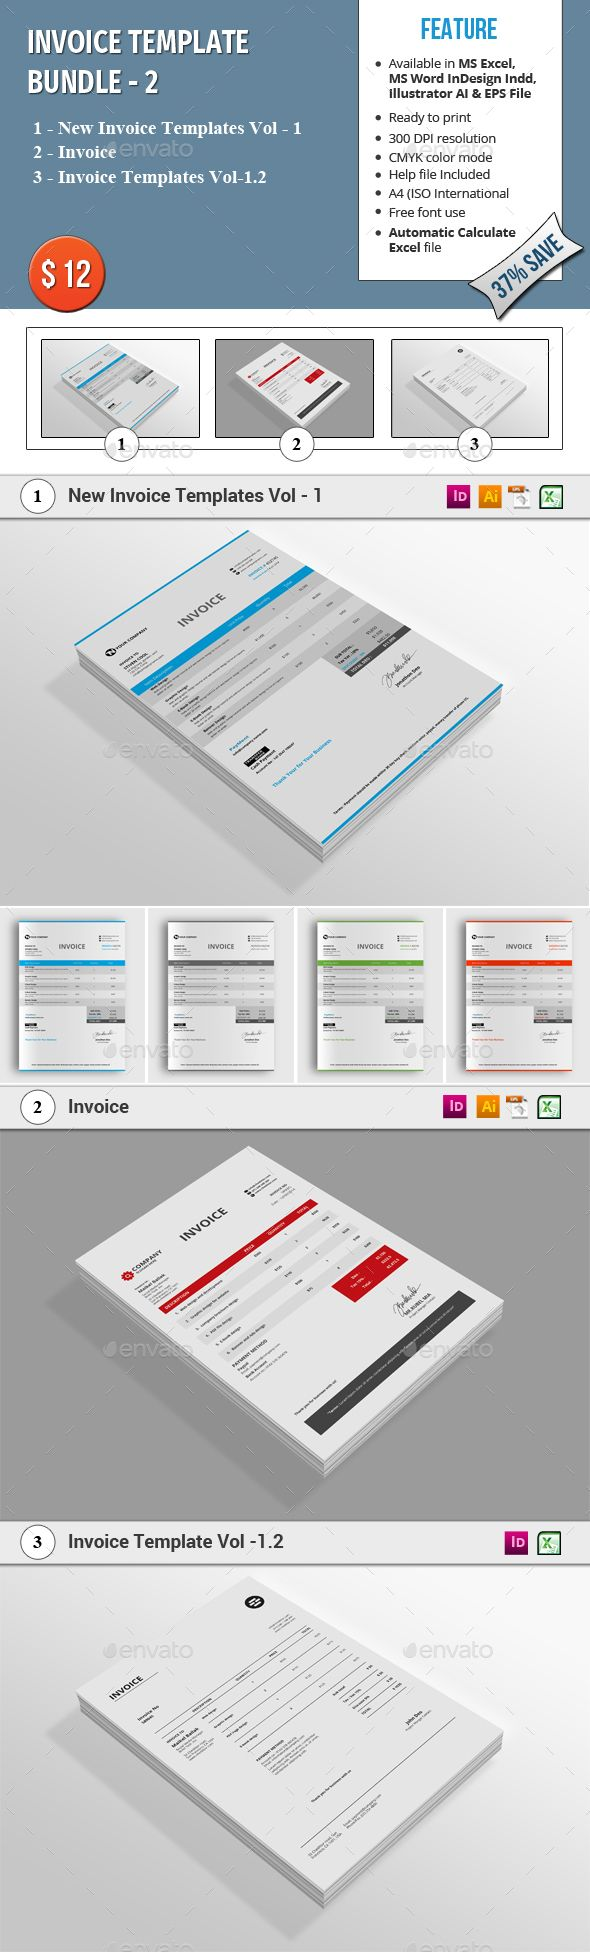 94 best Invoice Templates images on Pinterest | Invoice template ...